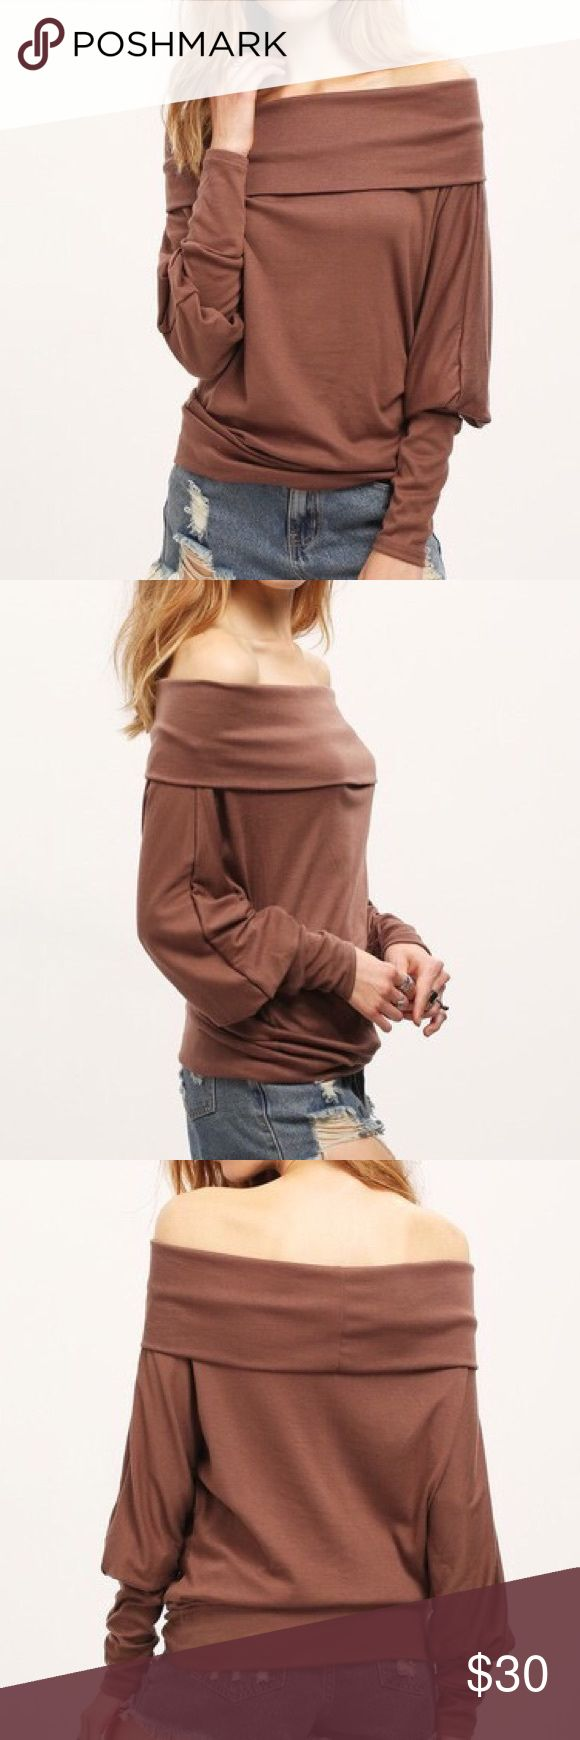 """Coming Brown open shoulder batwing T shirt S Bust 41"""" length 23.6"""" M Bust 42.5"""" length 24"""" L Bust 44"""" length 24.8"""" XL 45.5"""" length 25.2"""" Tops Tees - Long Sleeve"""